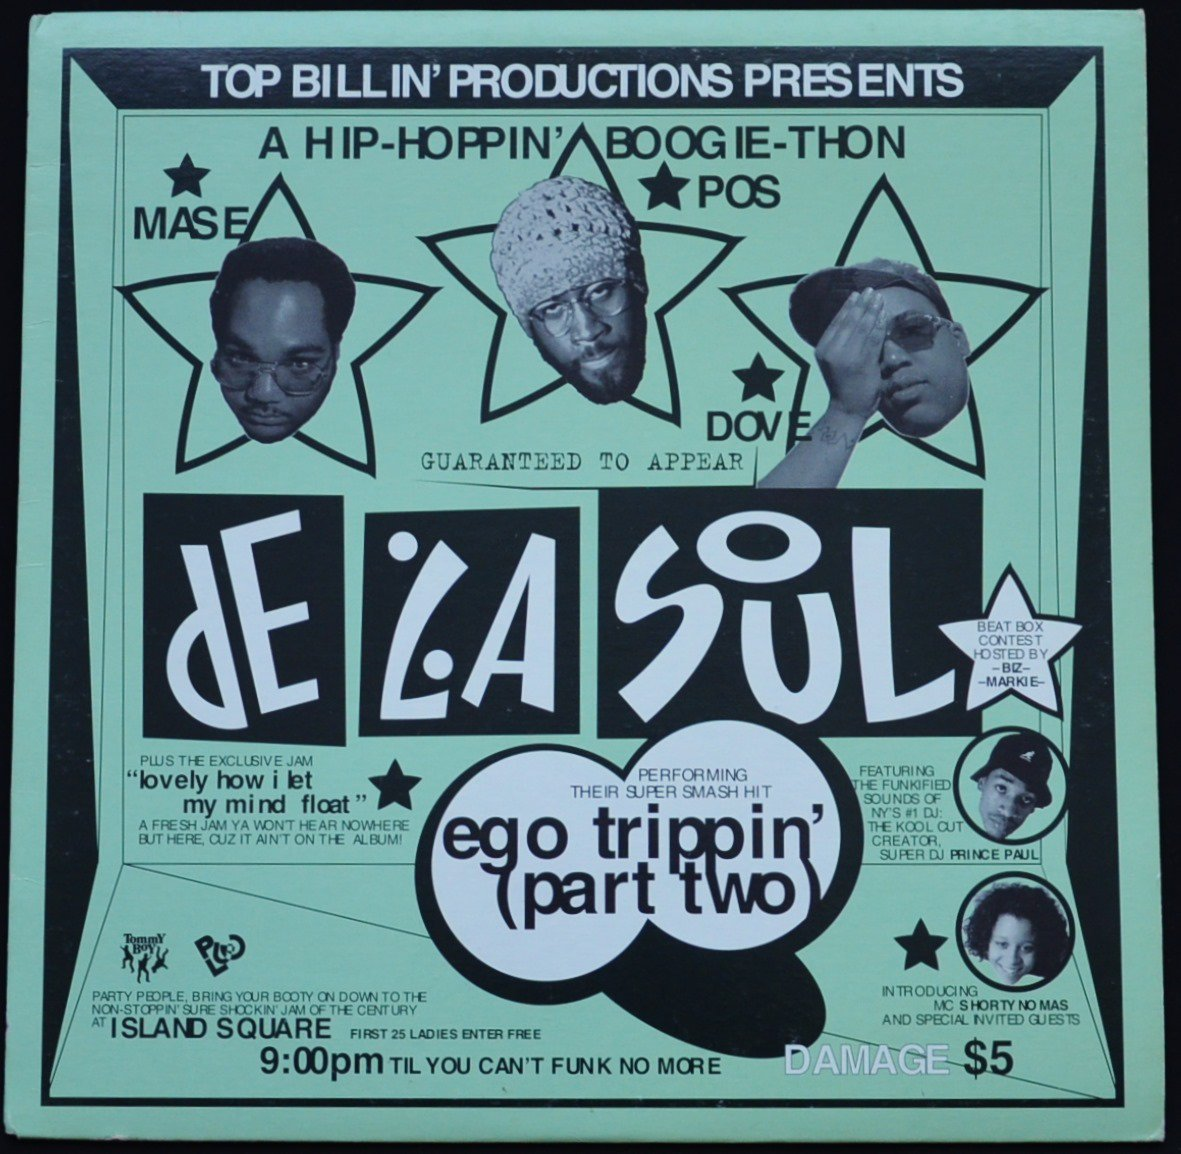 DE LA SOUL ‎/ EGO TRIPPIN' (PART TWO) / LOVELY HOW I LET MY MIND FLOAT (FEAT.BIZ MARKIE) (12